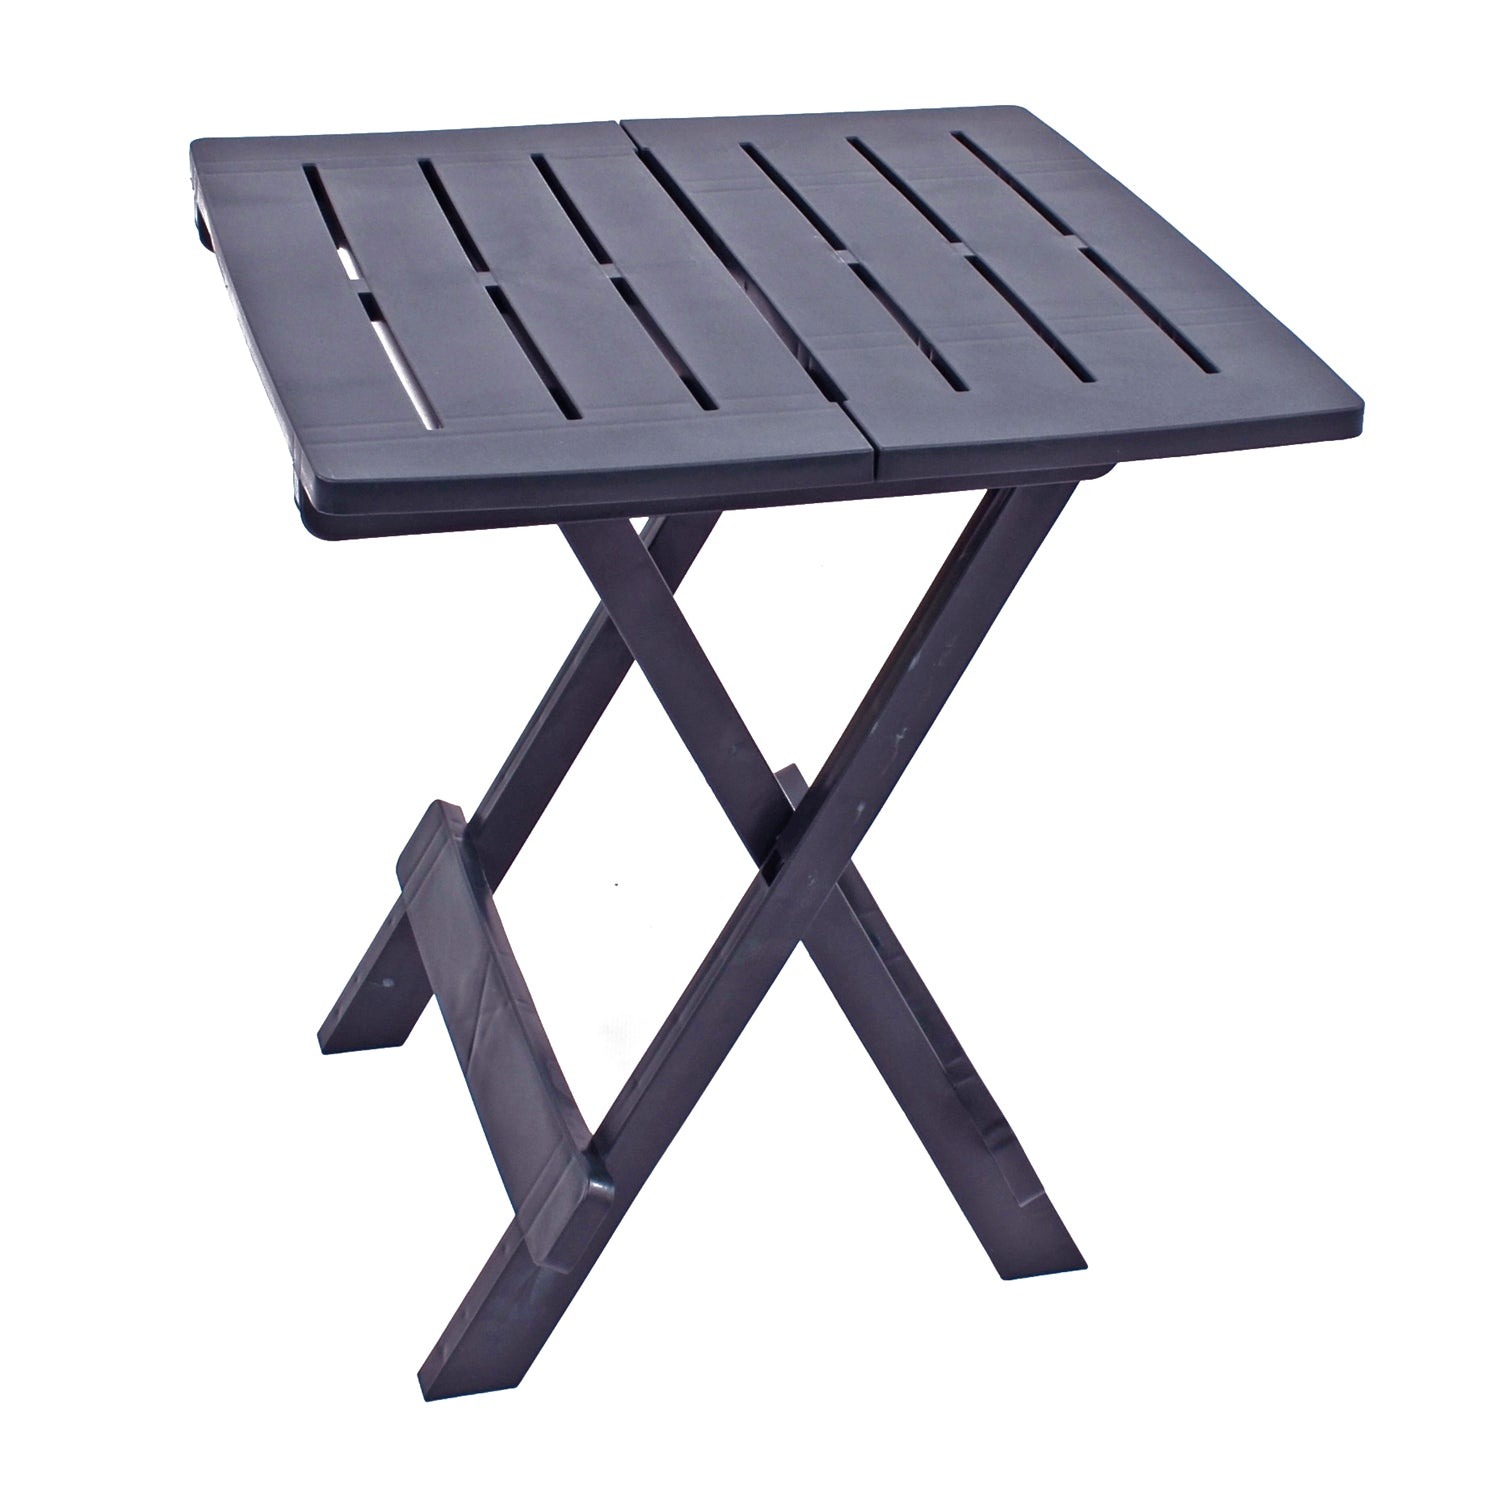 Trabella Bari Garden Patio Side Table Anthracite - Ruby's Garden Boutique